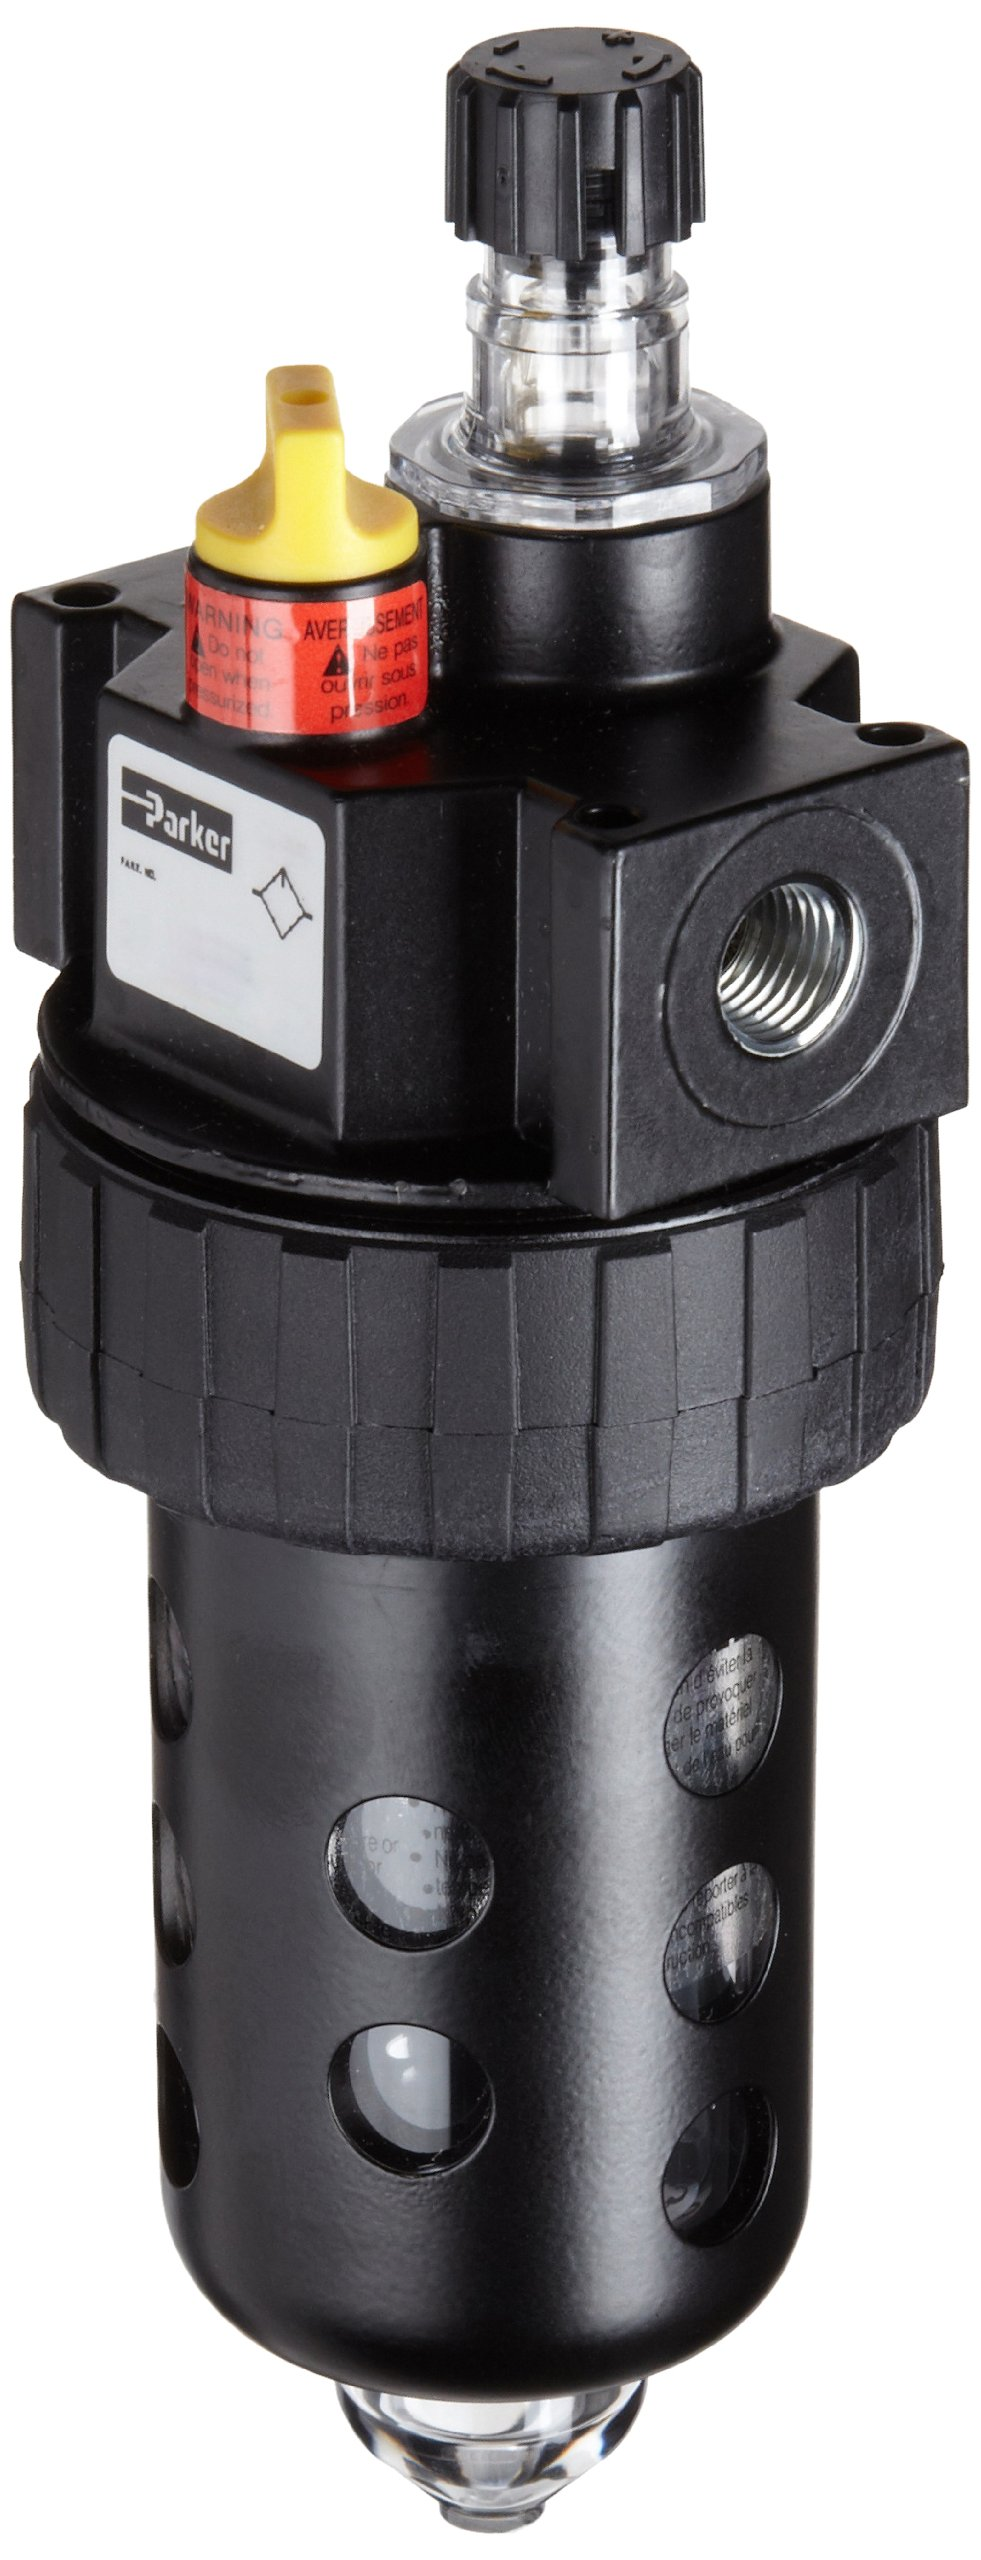 Parker 16L34BE Lubricator, Metal Bowl with Sight Gauge, Manual Drain, 90 scfm, 1/2'' NPT by Parker